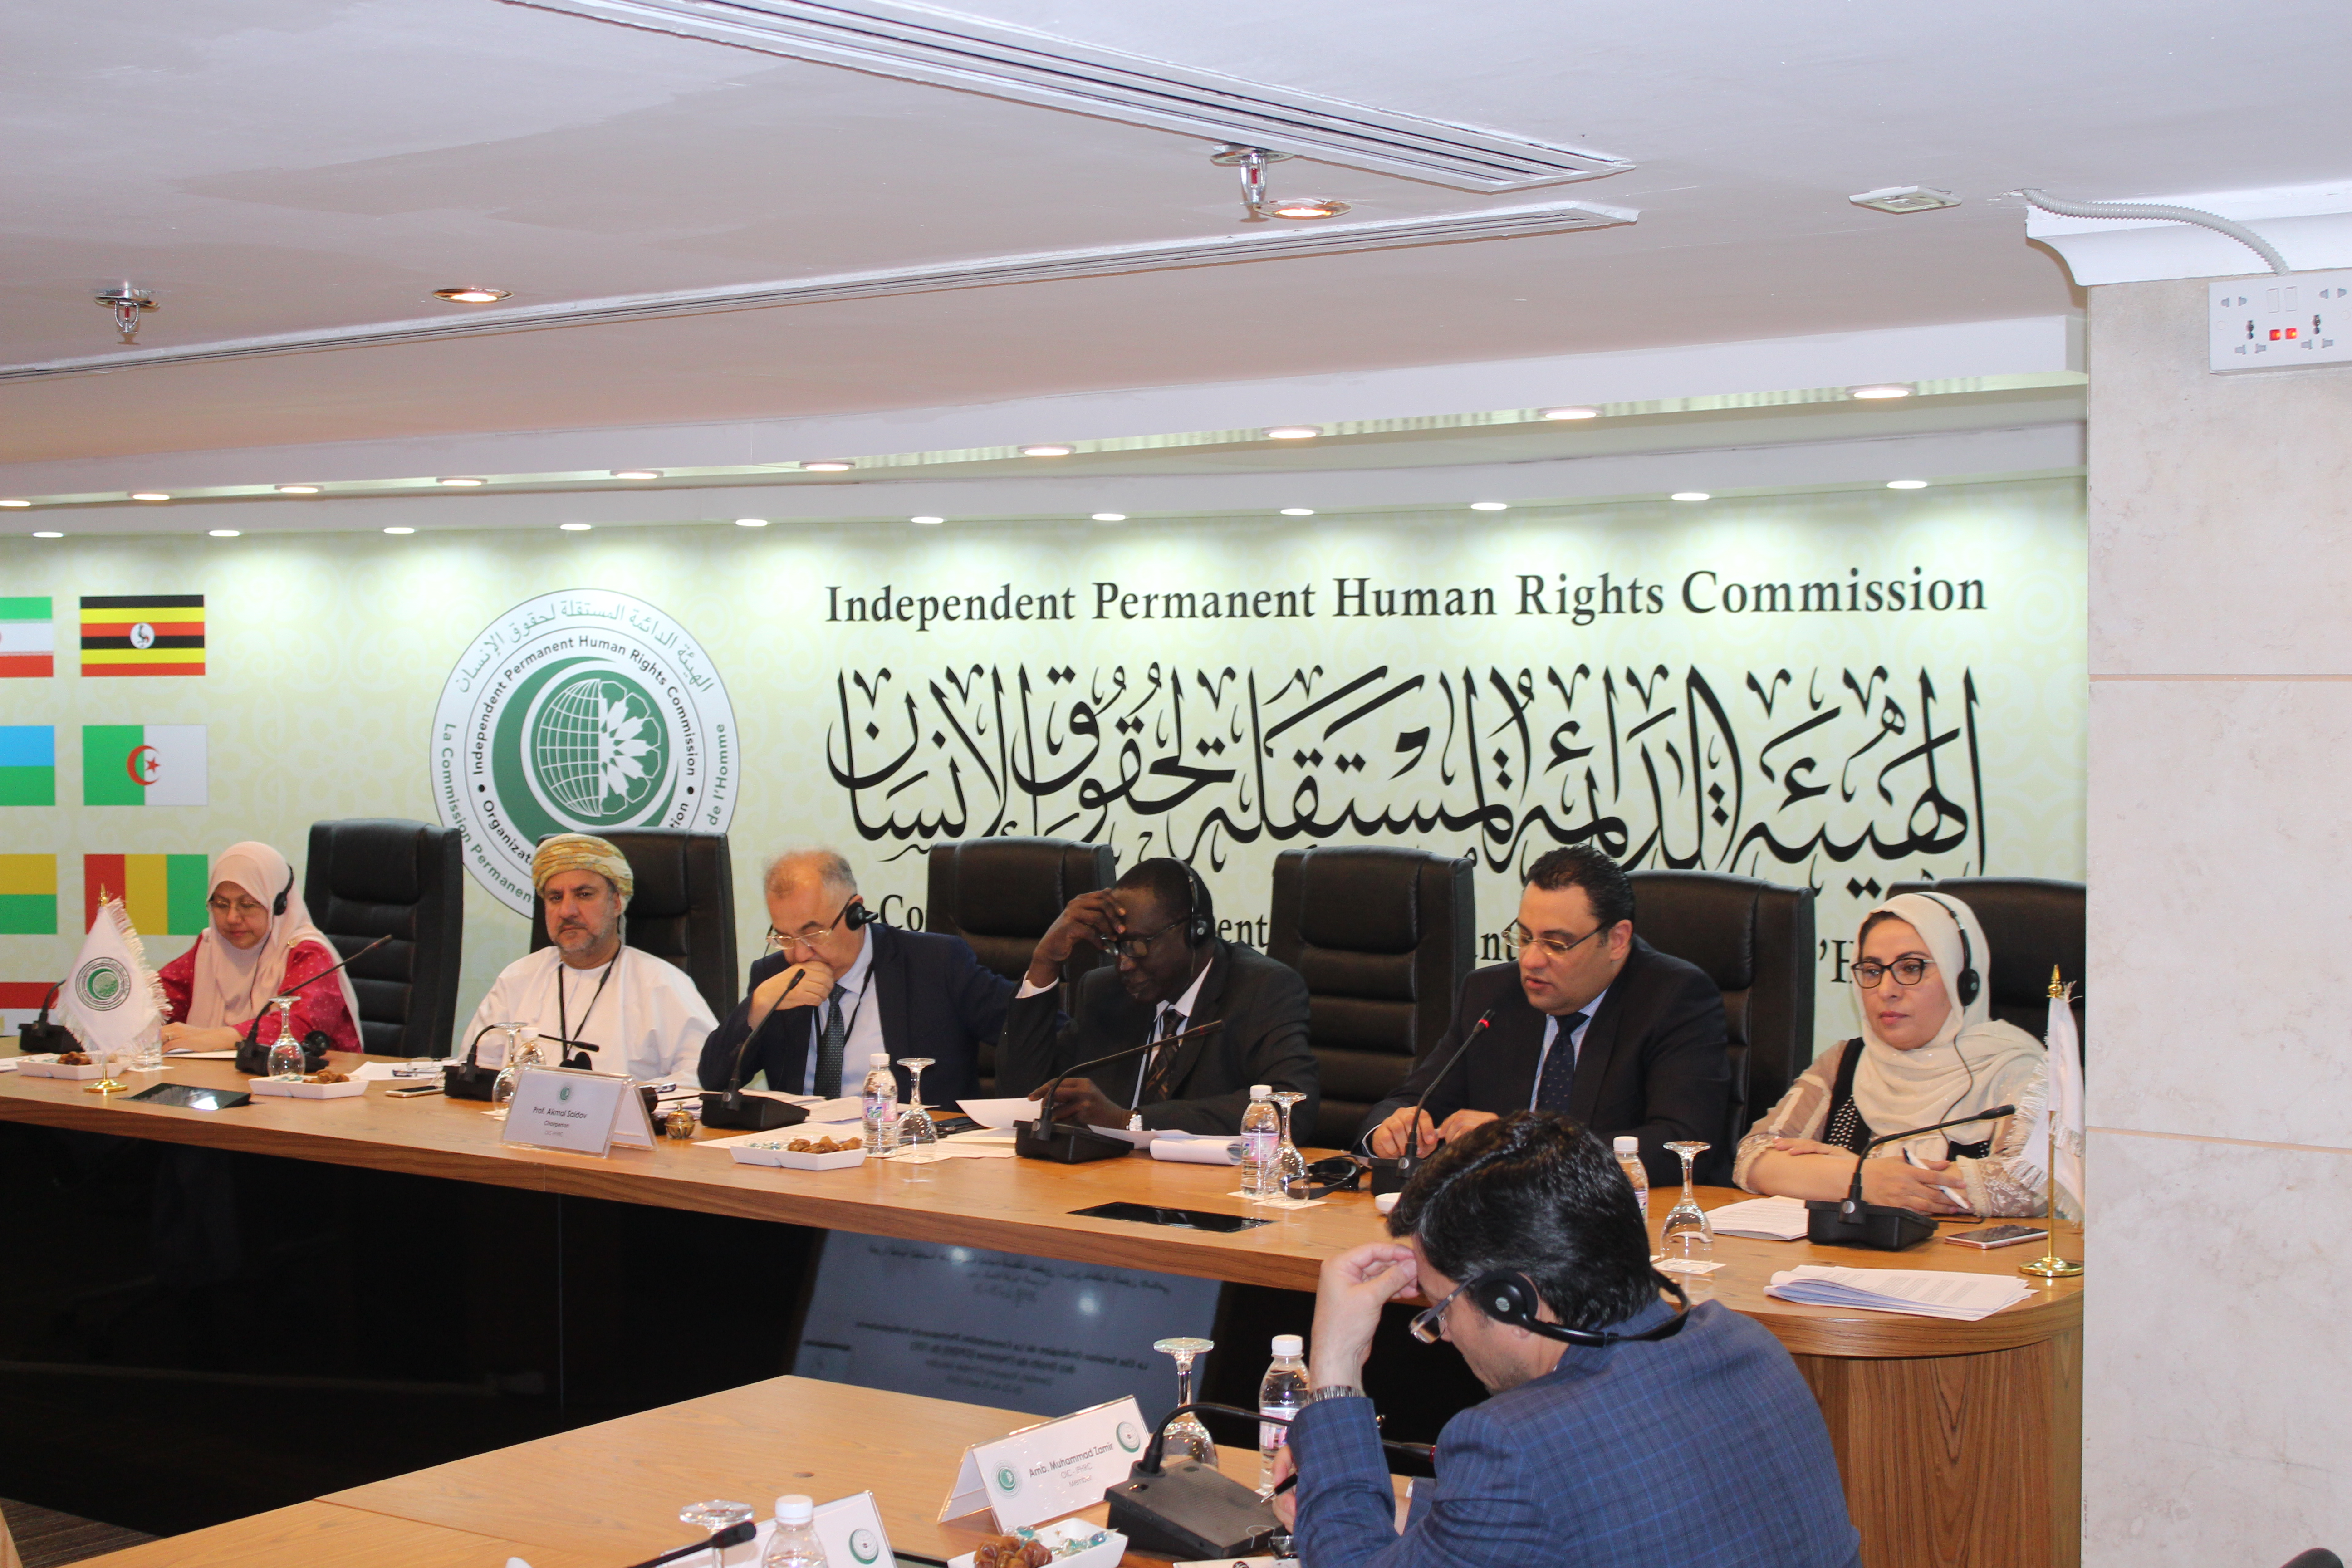 IPHRC - The Independent Permanent Human Rights Commission